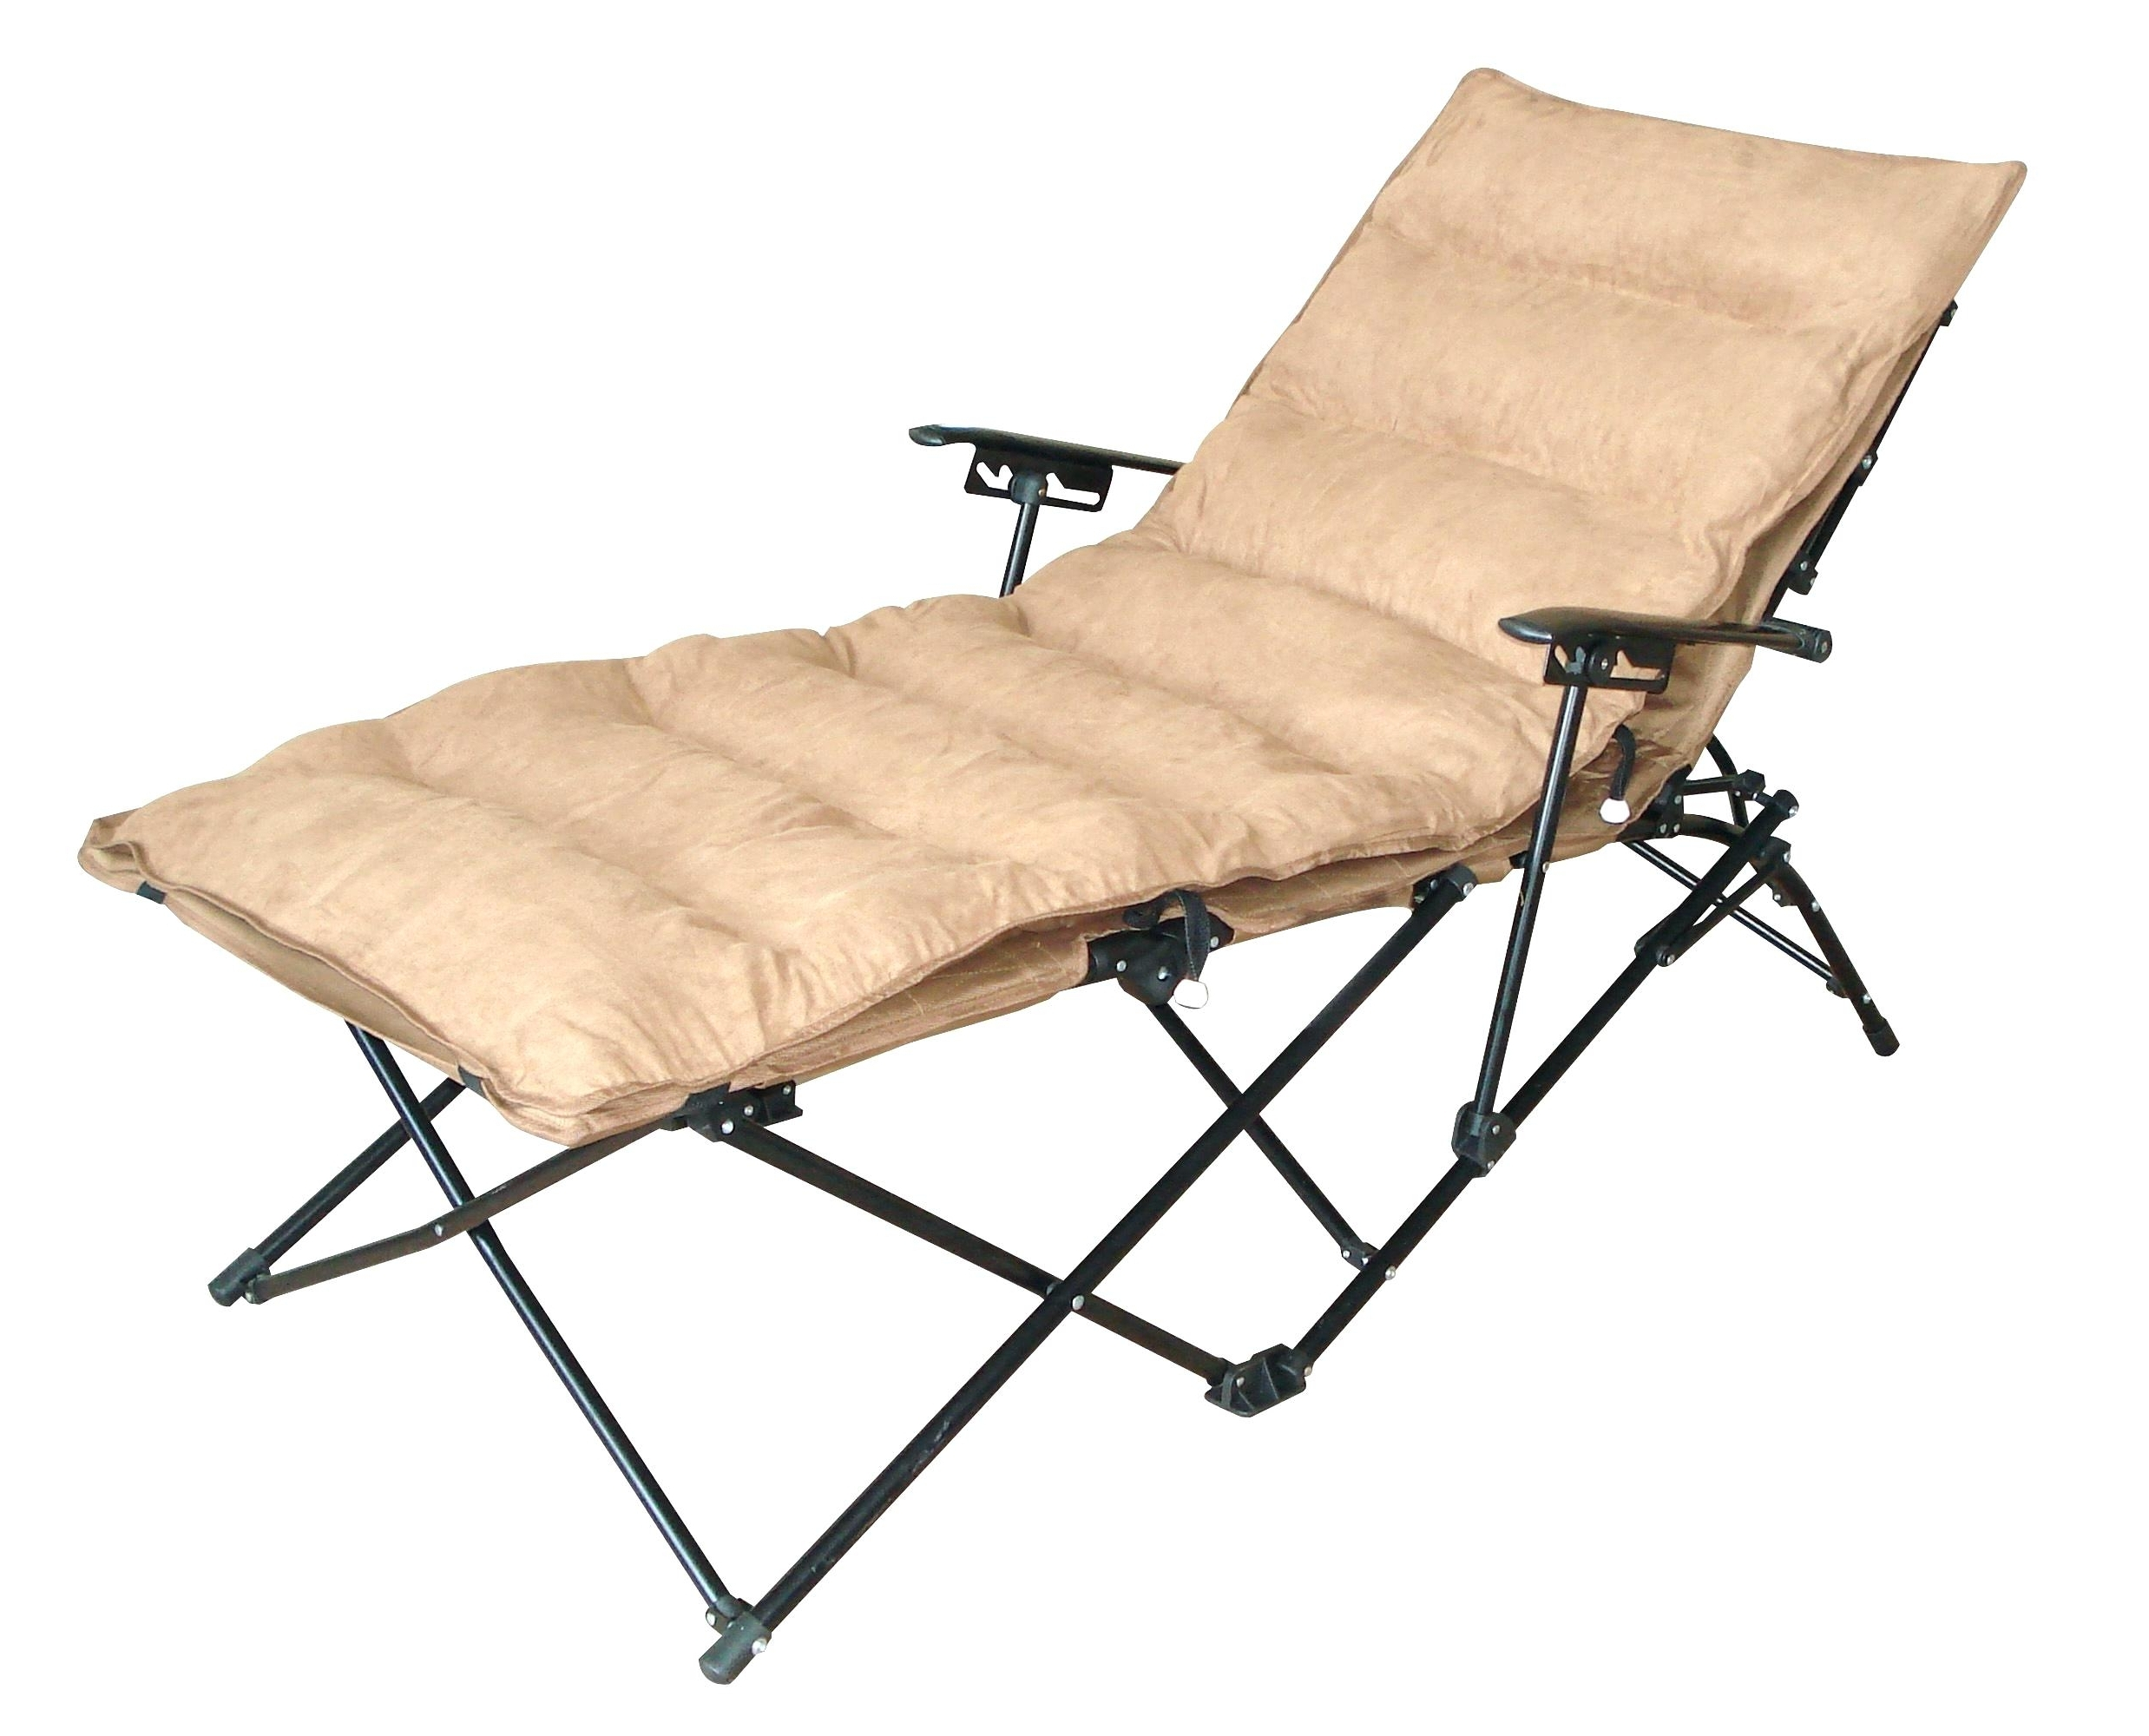 Most Popular Folding Chaise Lounge Chair With Cup Holder • Lounge Chairs Ideas Inside Maureen Outdoor Folding Chaise Lounge Chairs (View 12 of 15)